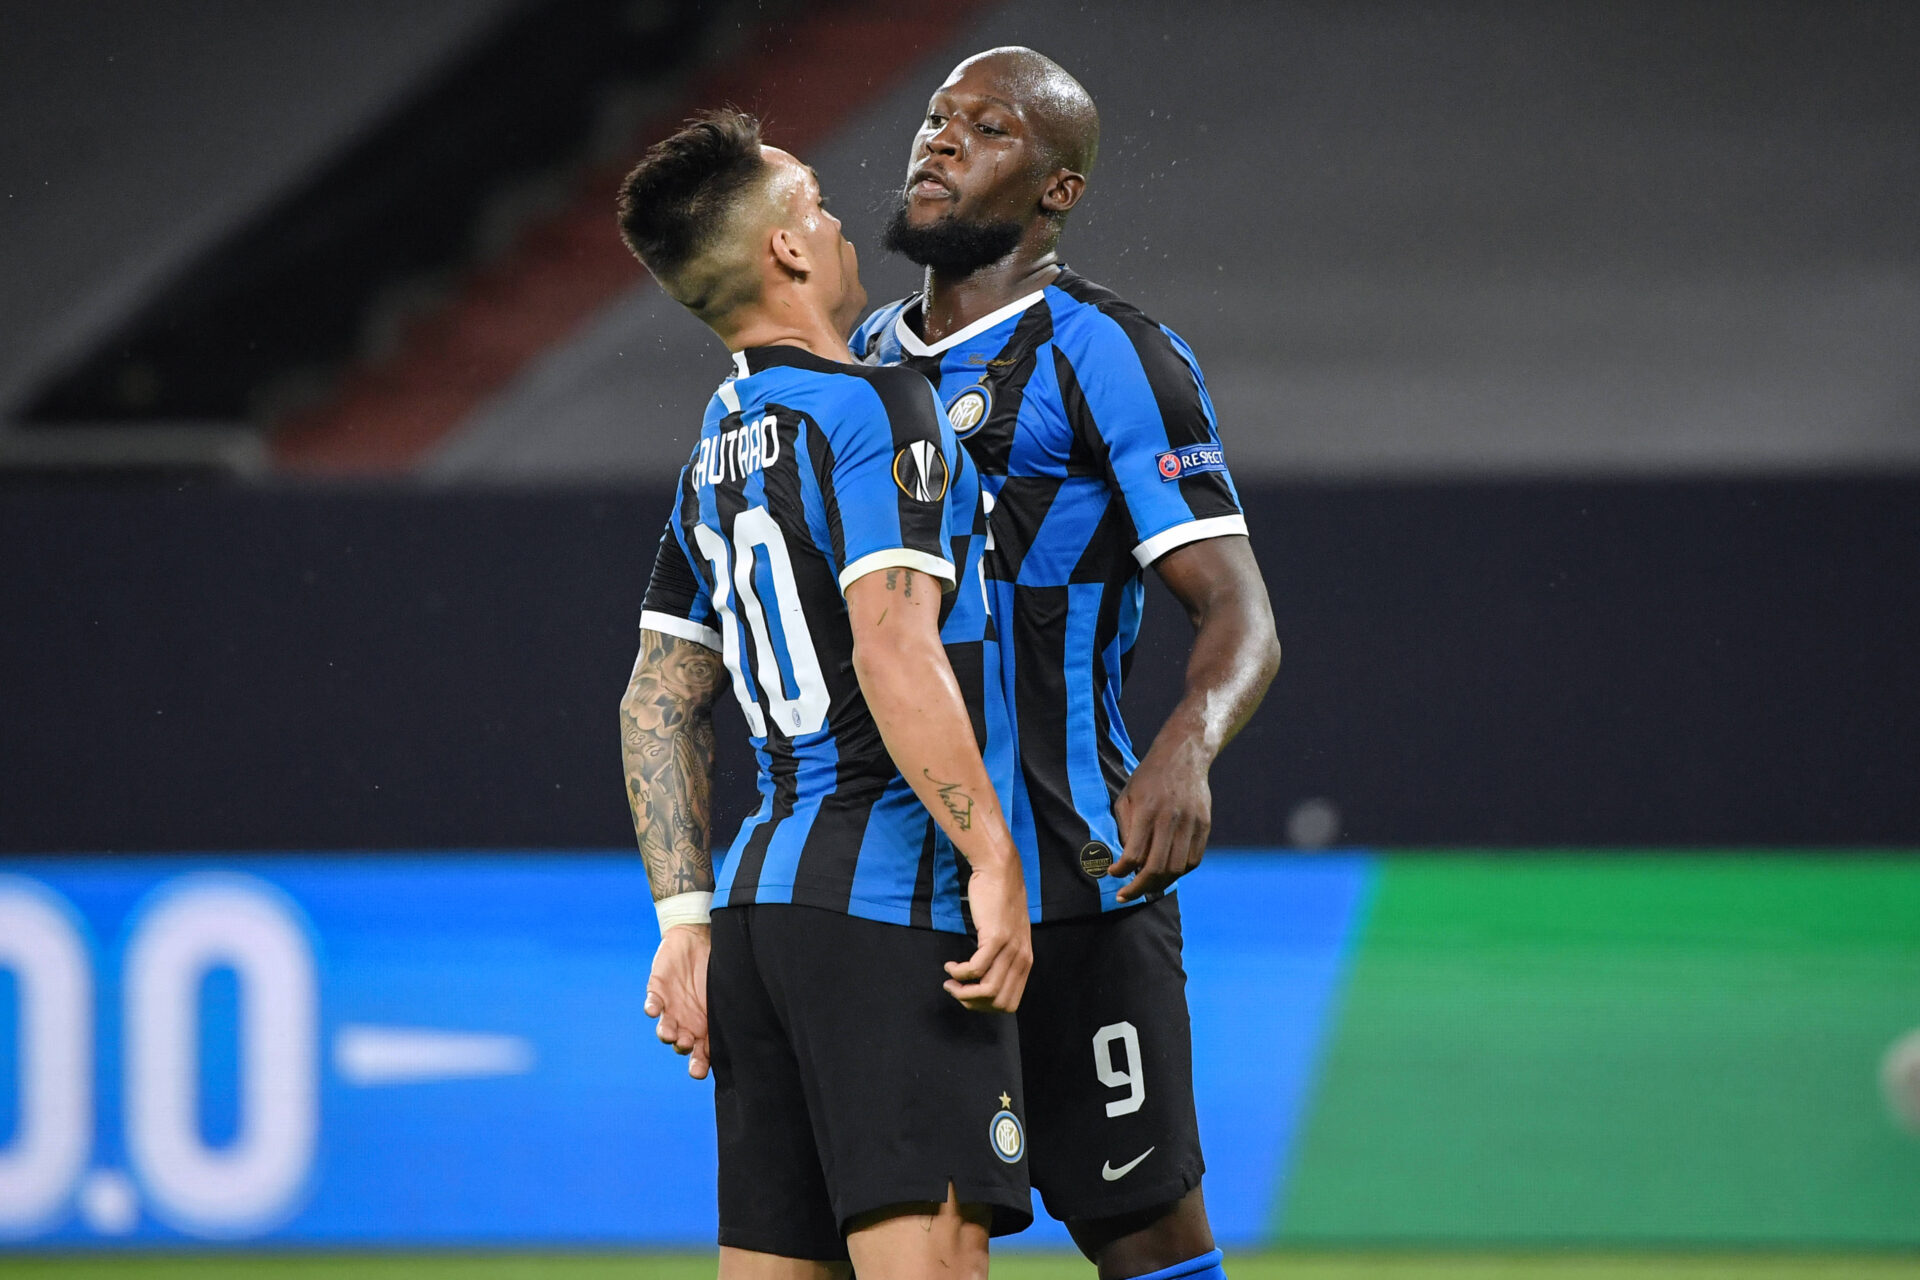 Lukaku e Lautaro Martinez, giocatori dell'Inter (foto by @imagephotoagency)